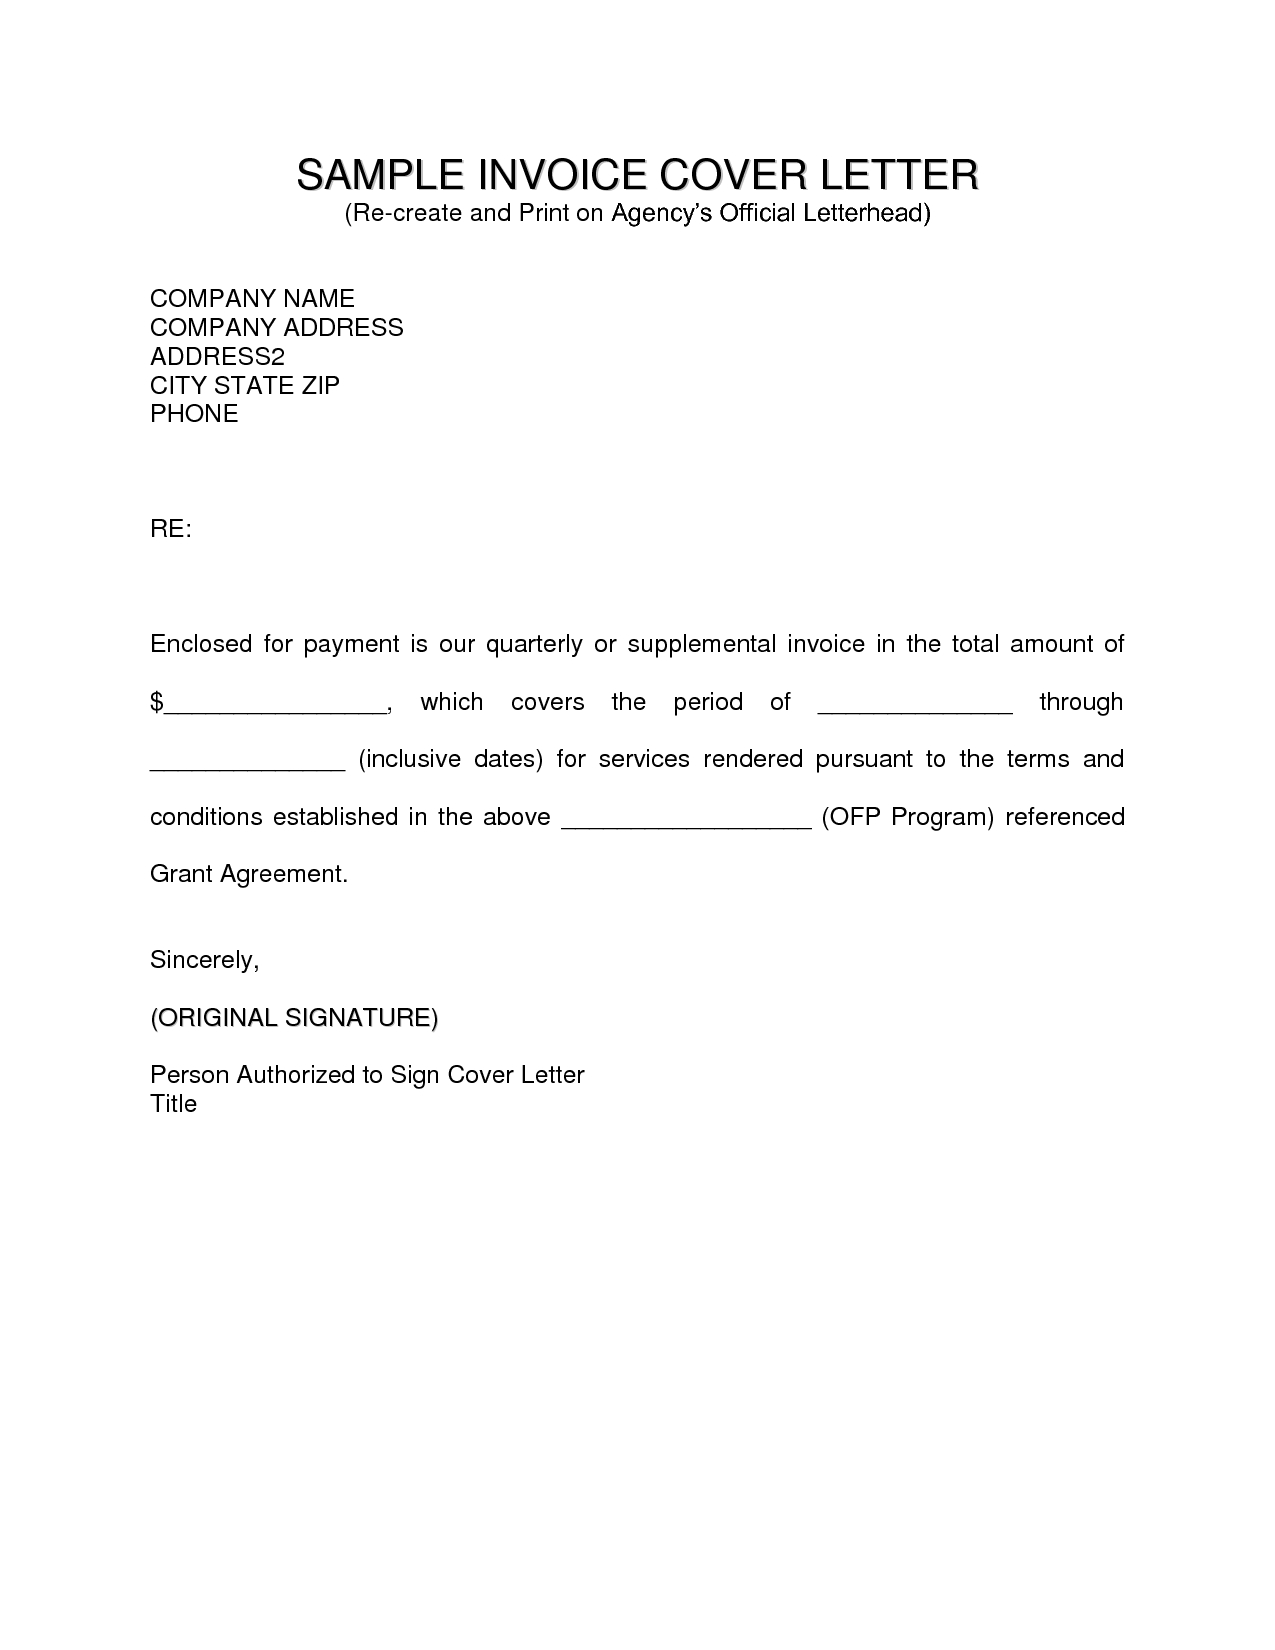 cover letter sample download best gallery resume cv professional invoice cover letter